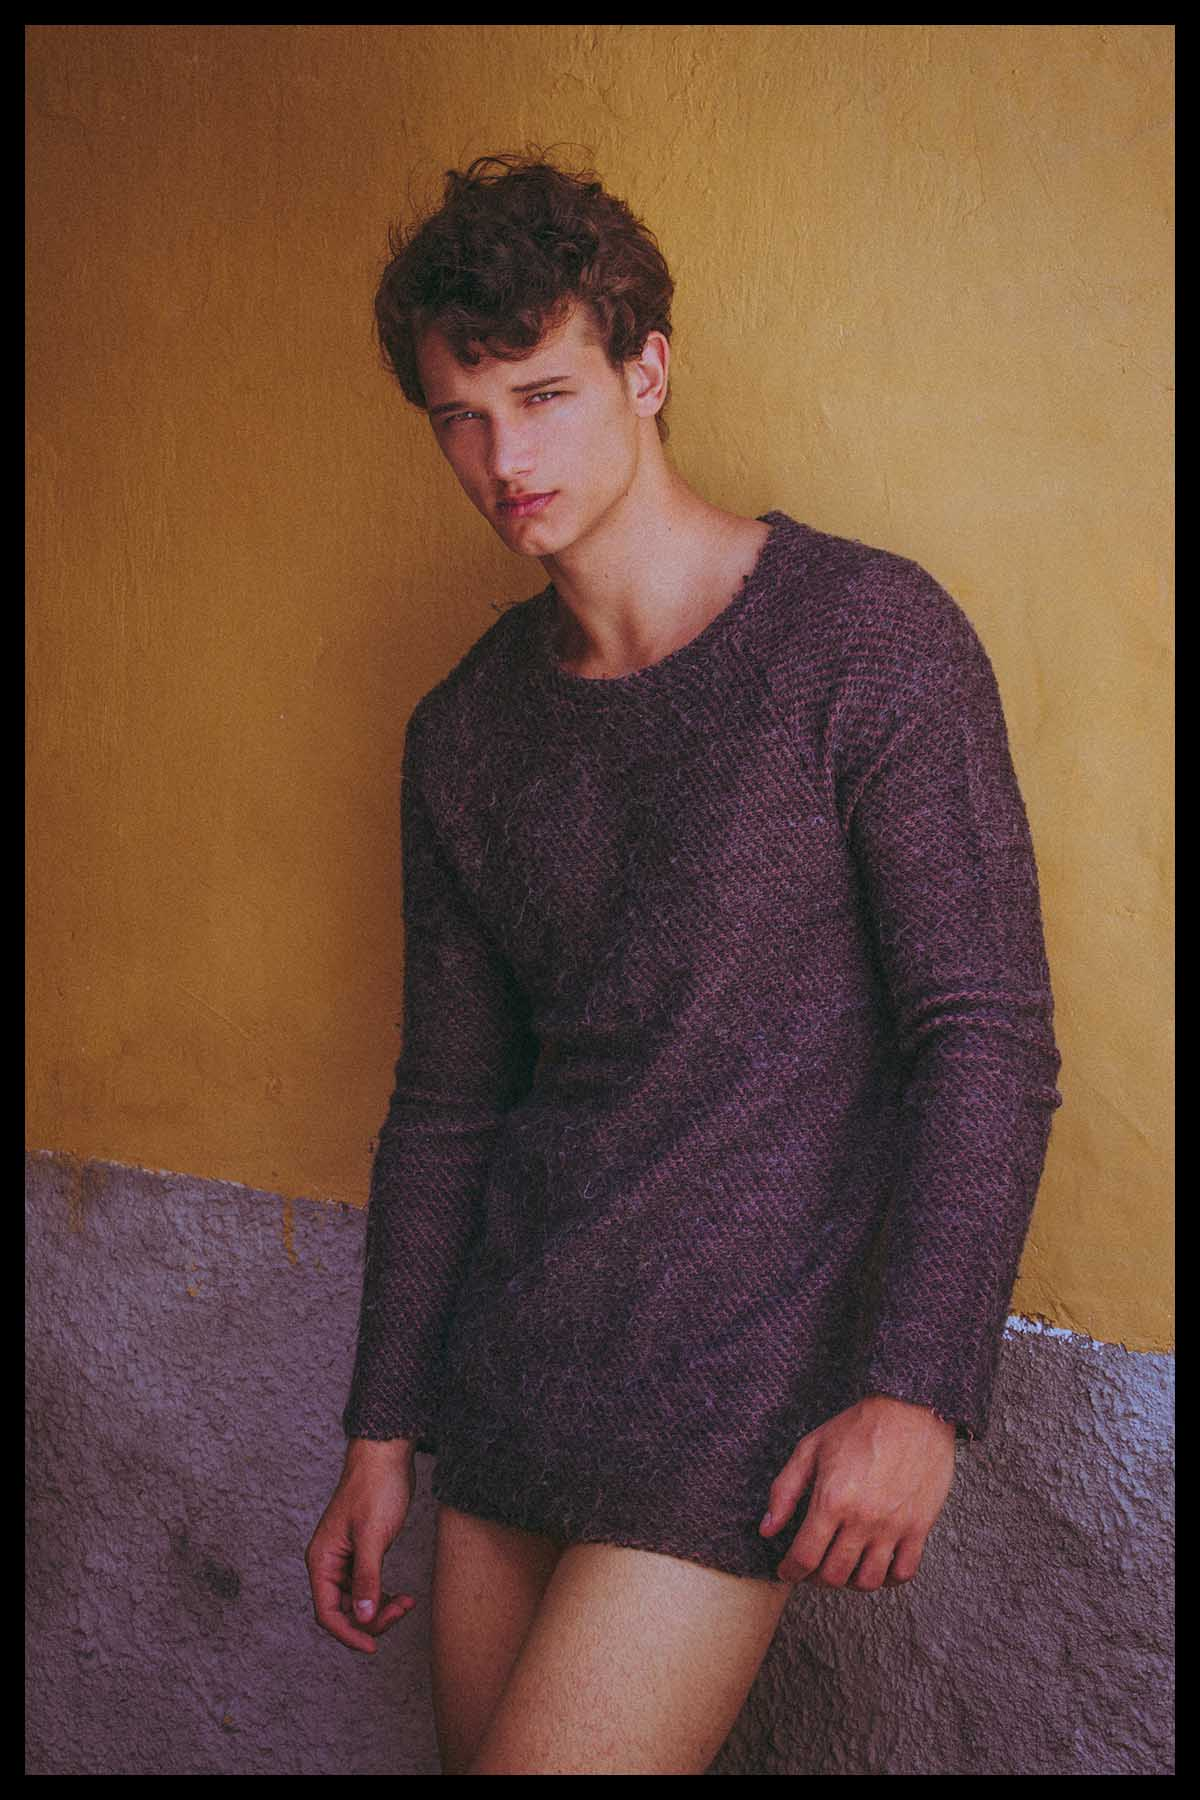 Kevin Littig by Felipe Quintini for Brazilian Male Model